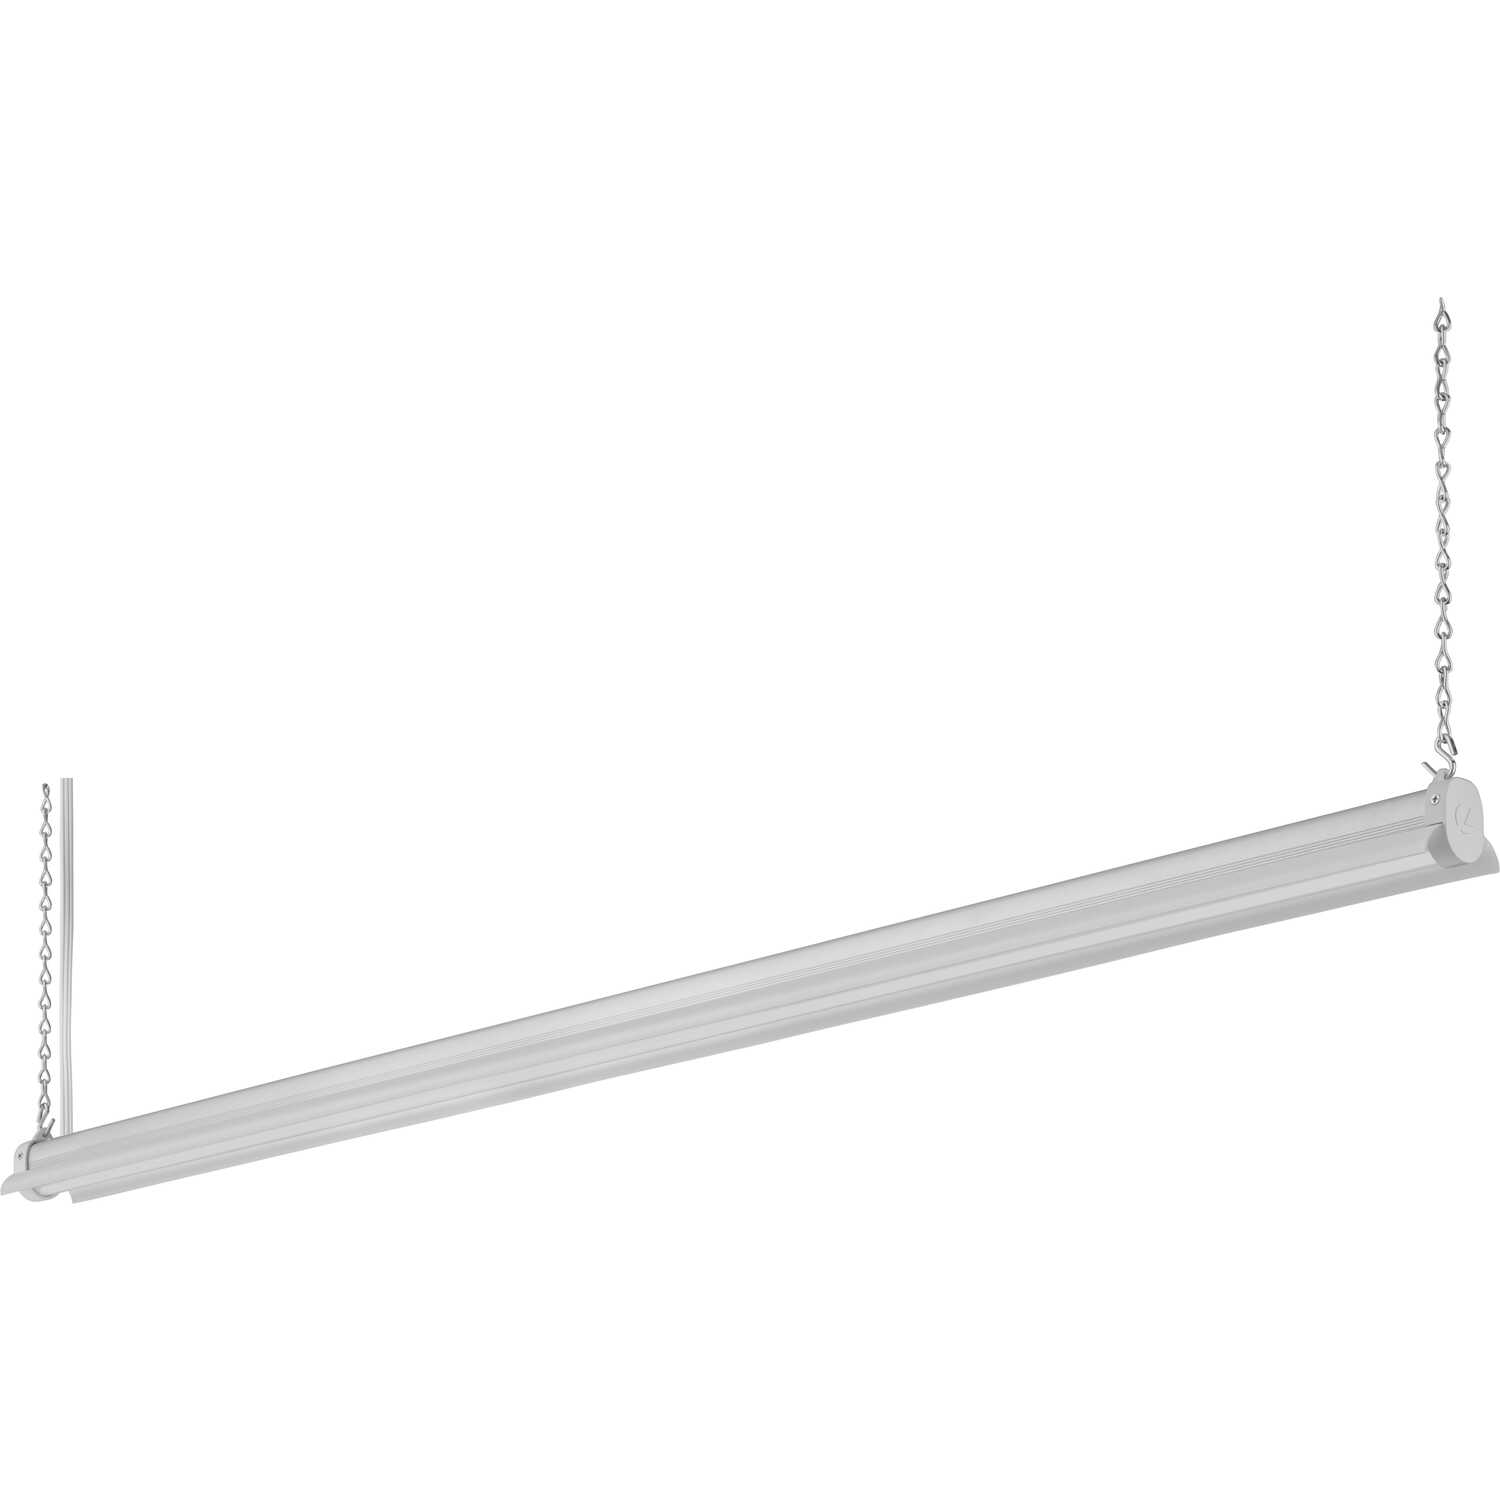 Lithonia Lighting  36 watts LED  48 in. Shop Light